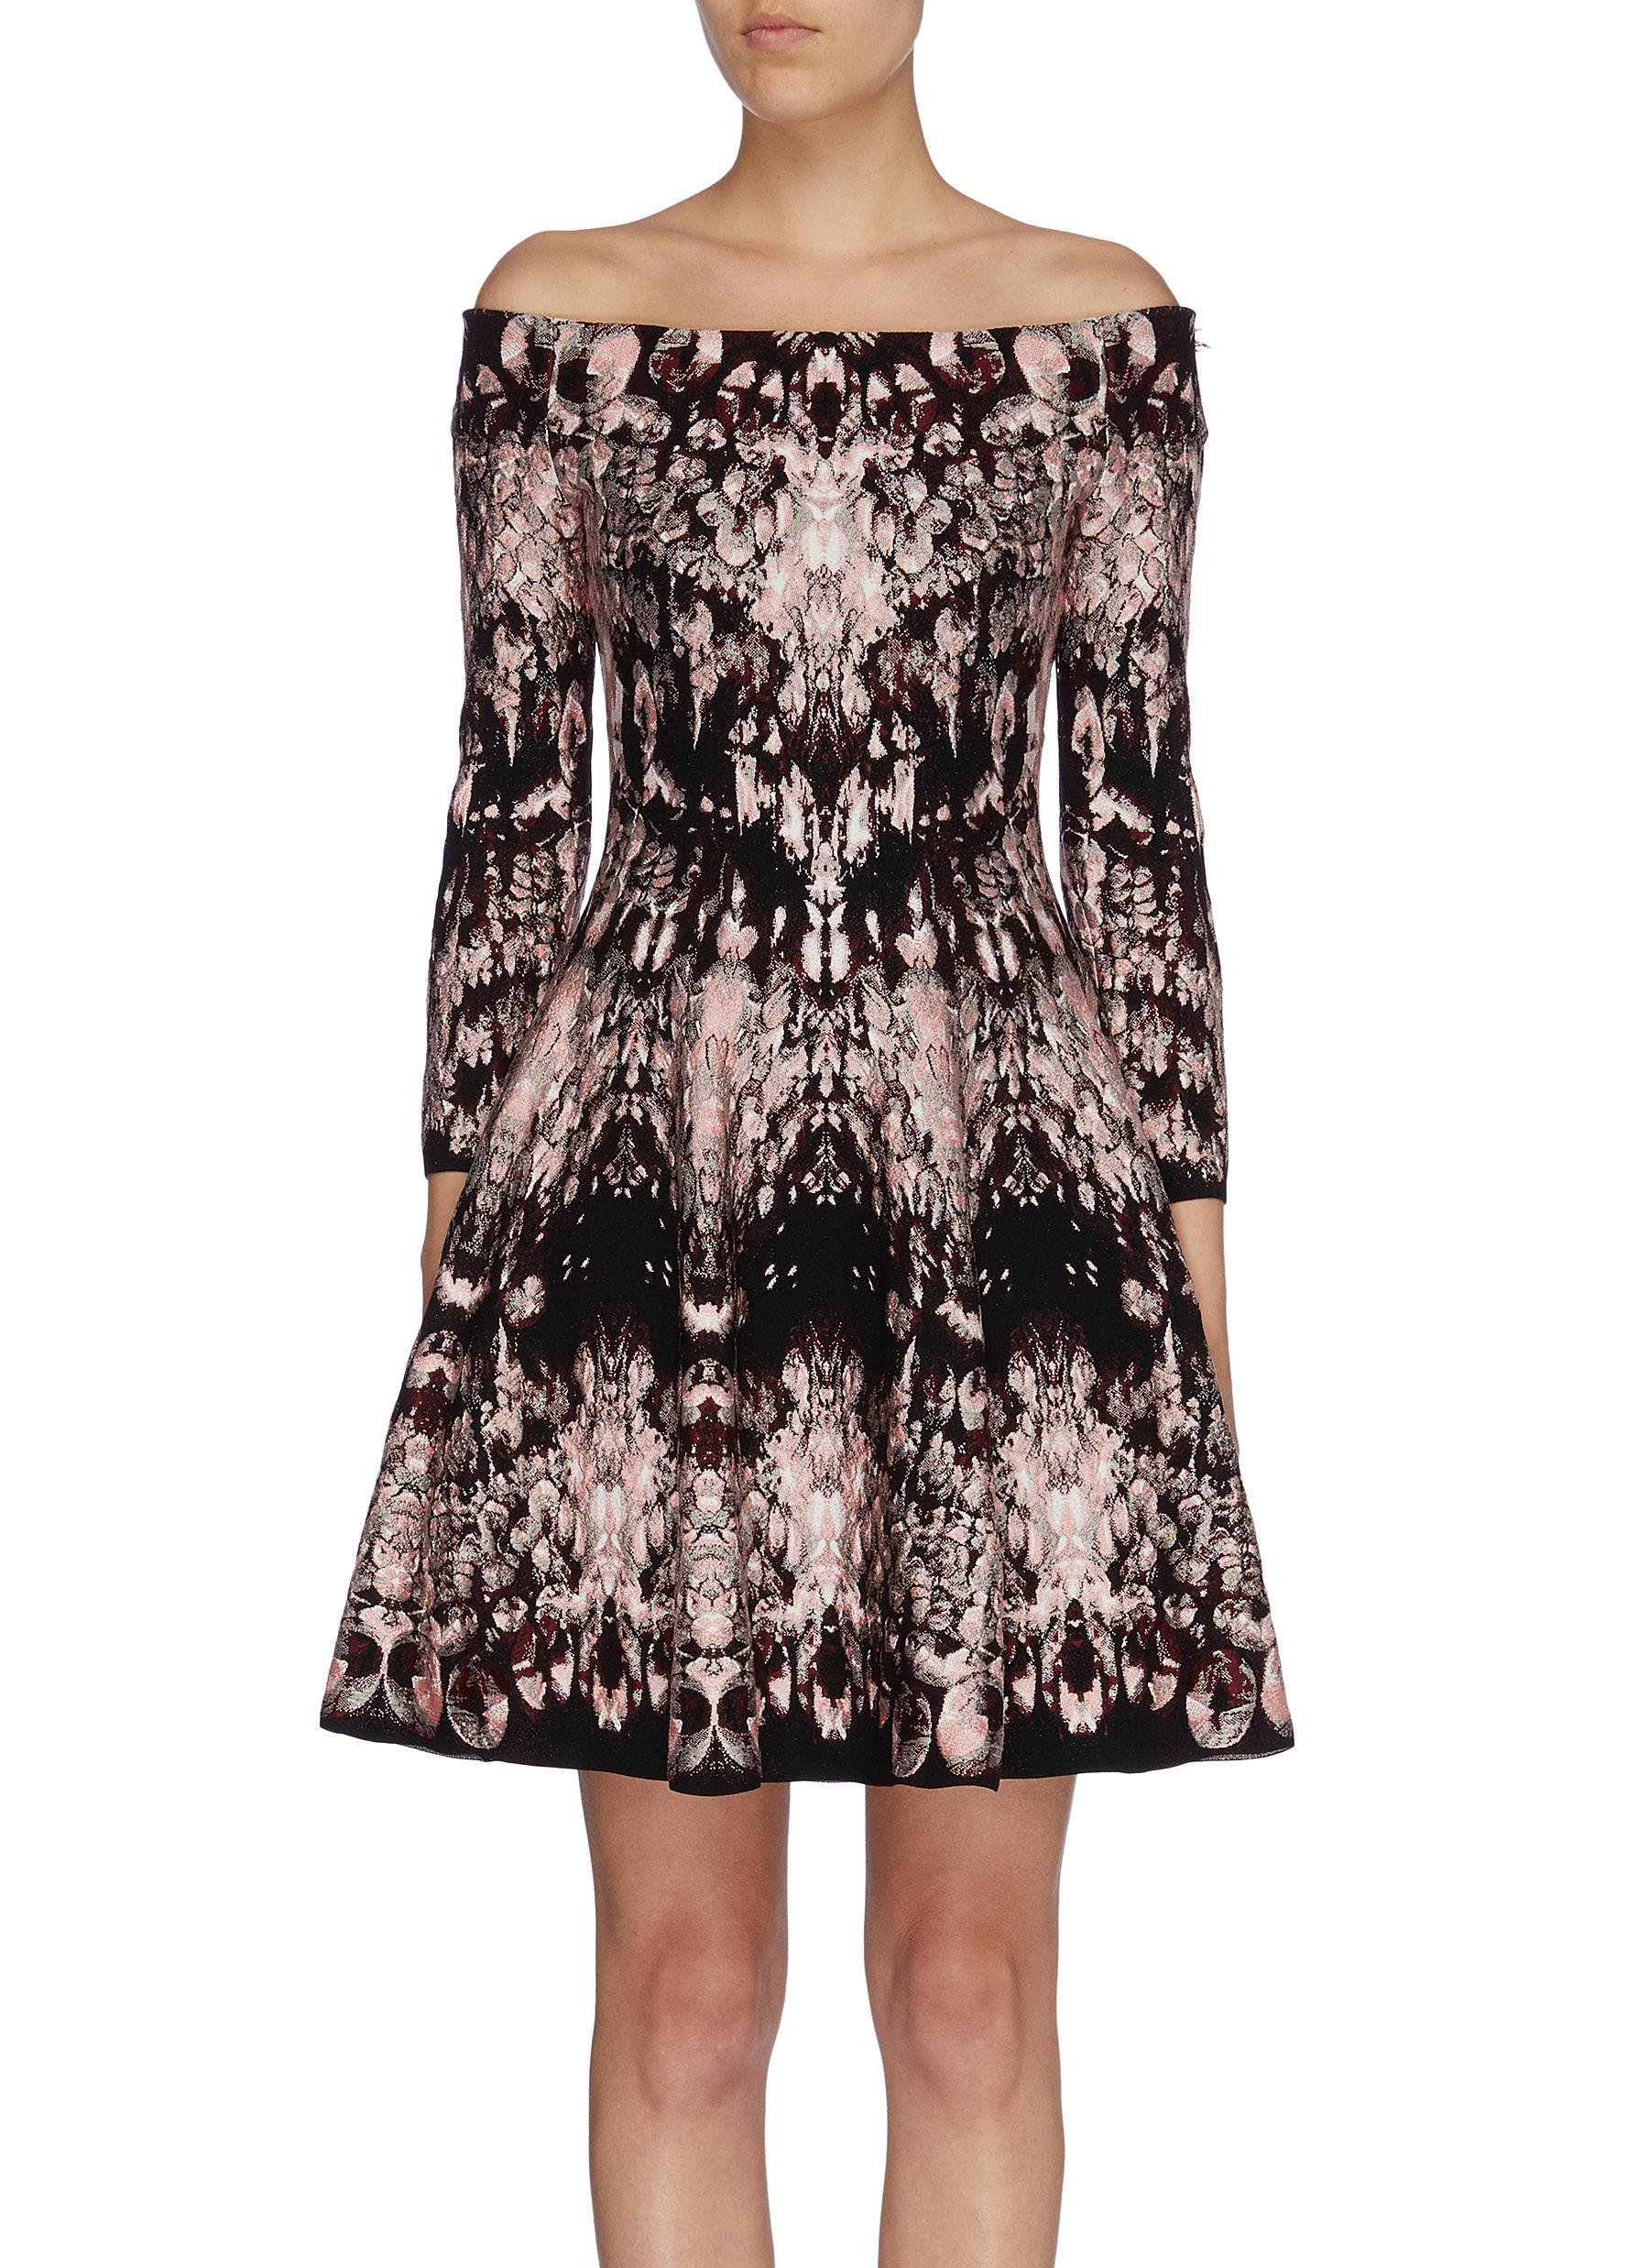 Flared crystal jacquard off-shoulder dress by Alexander Mcqueen